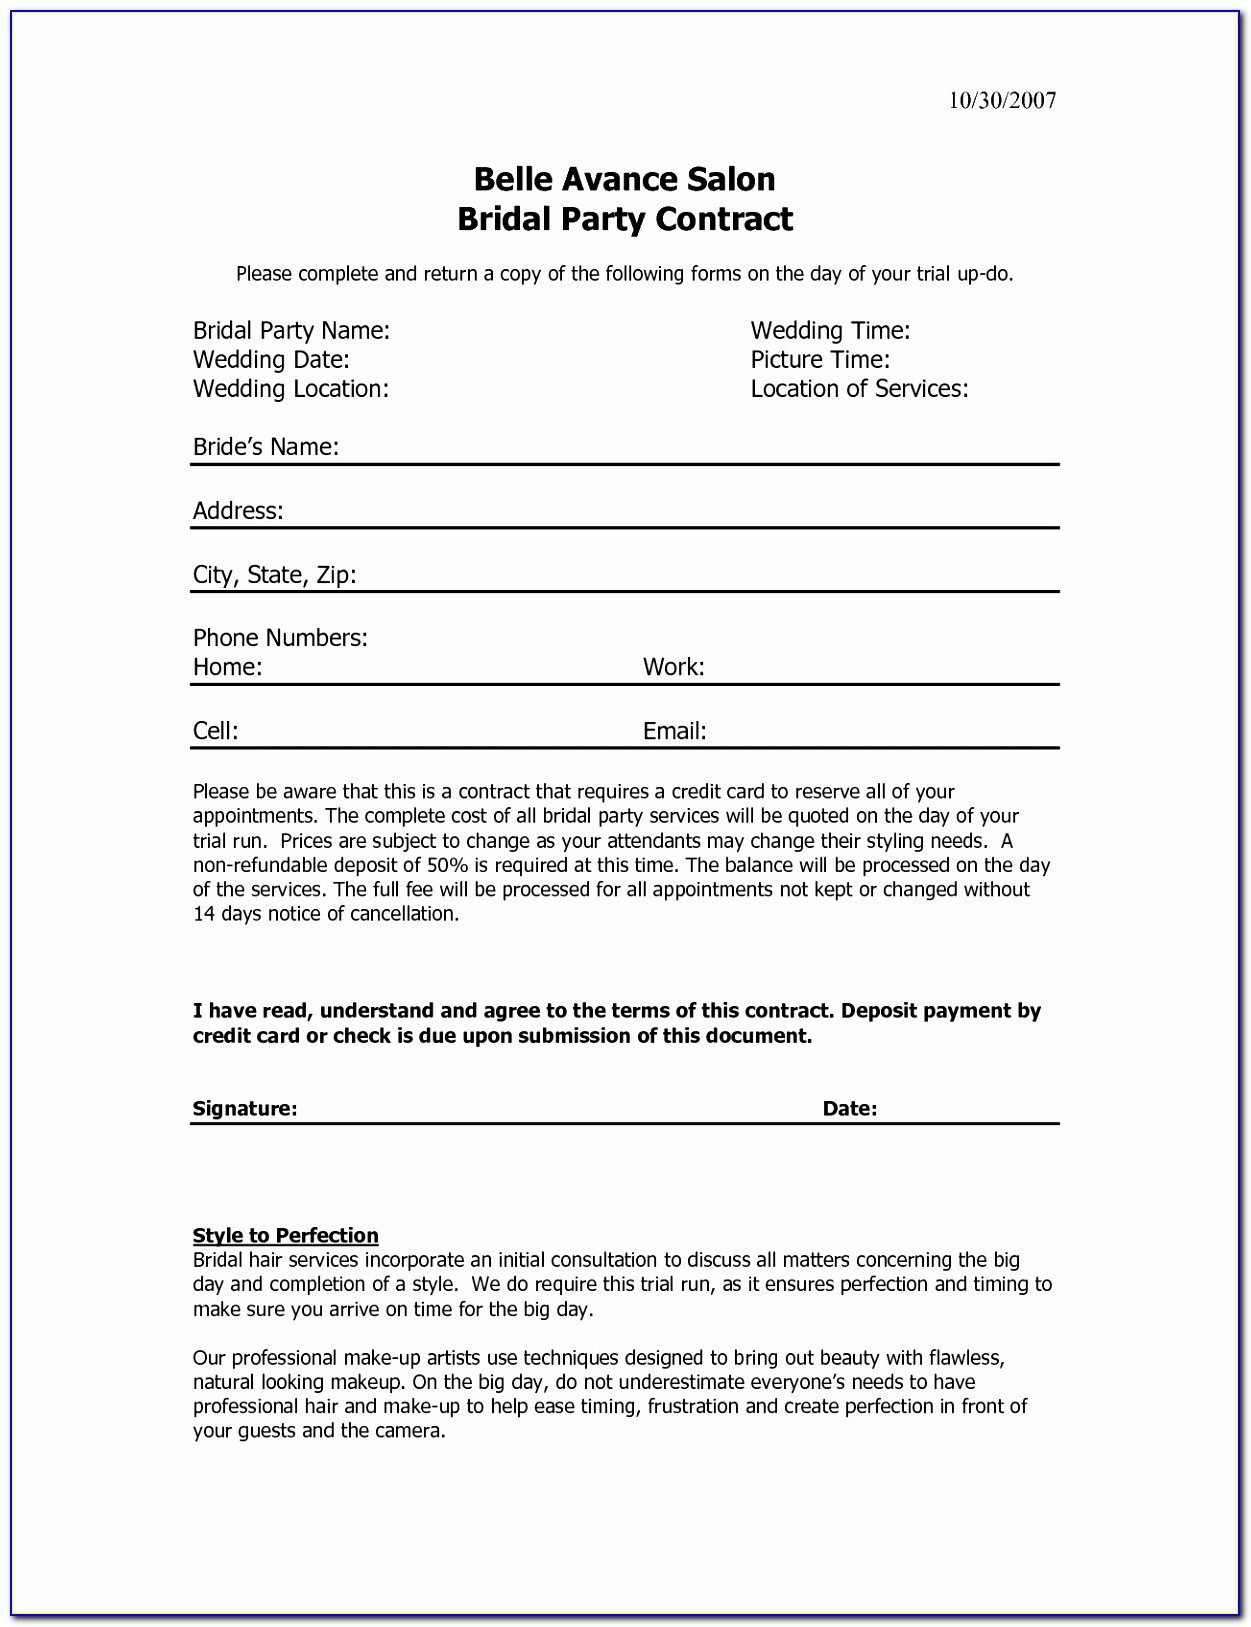 11 Best Of Contract Agreement For Salon Hair Salon Booth Printable Wedding Hair Contract Template Luxury Pdf Word Excel Templates Aoupi